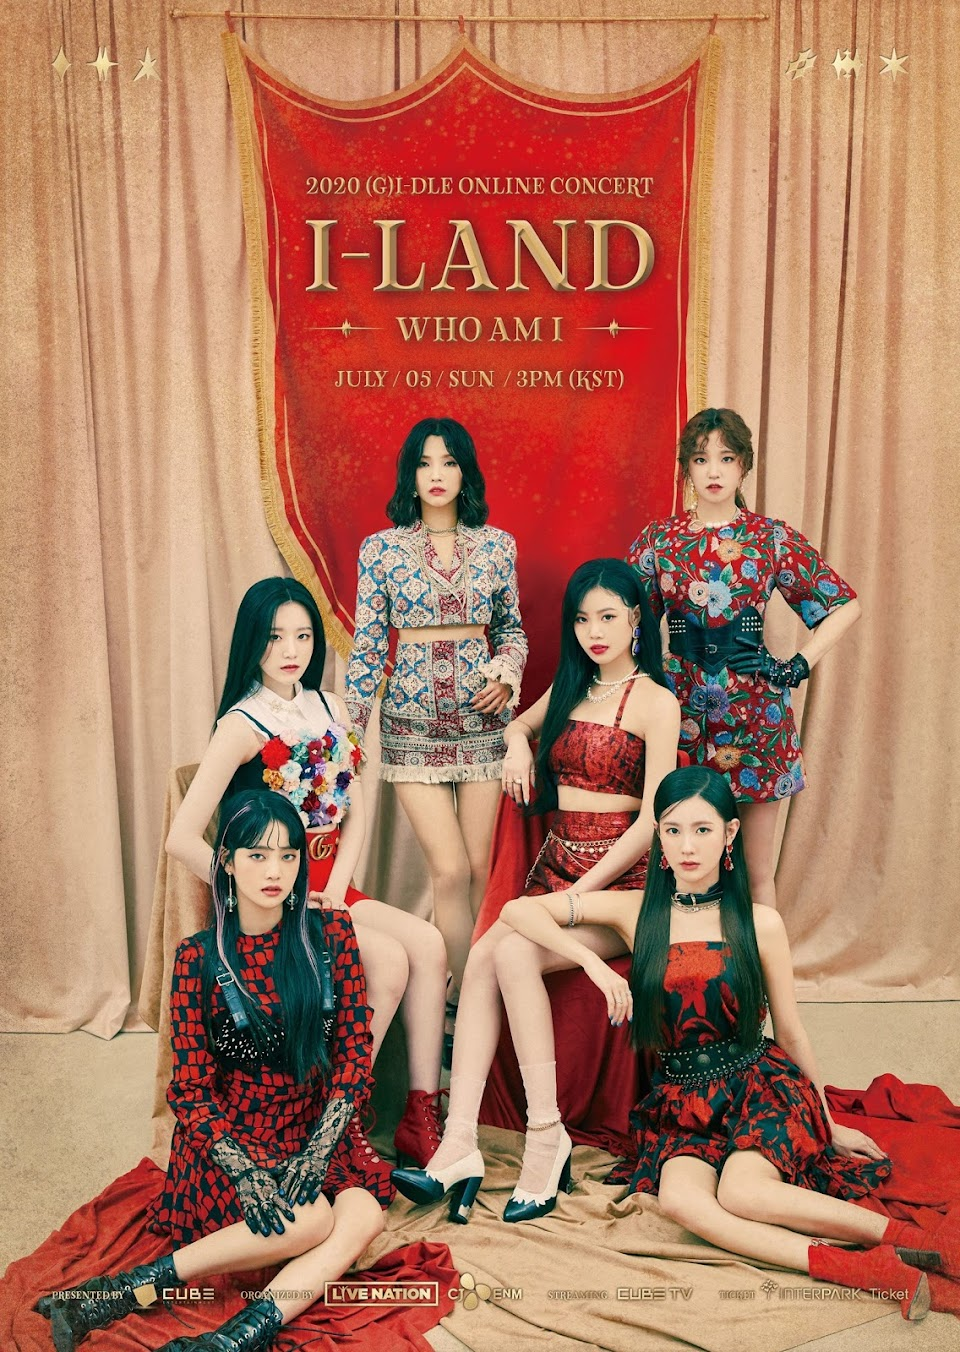 gidle-concert-poster-scaled